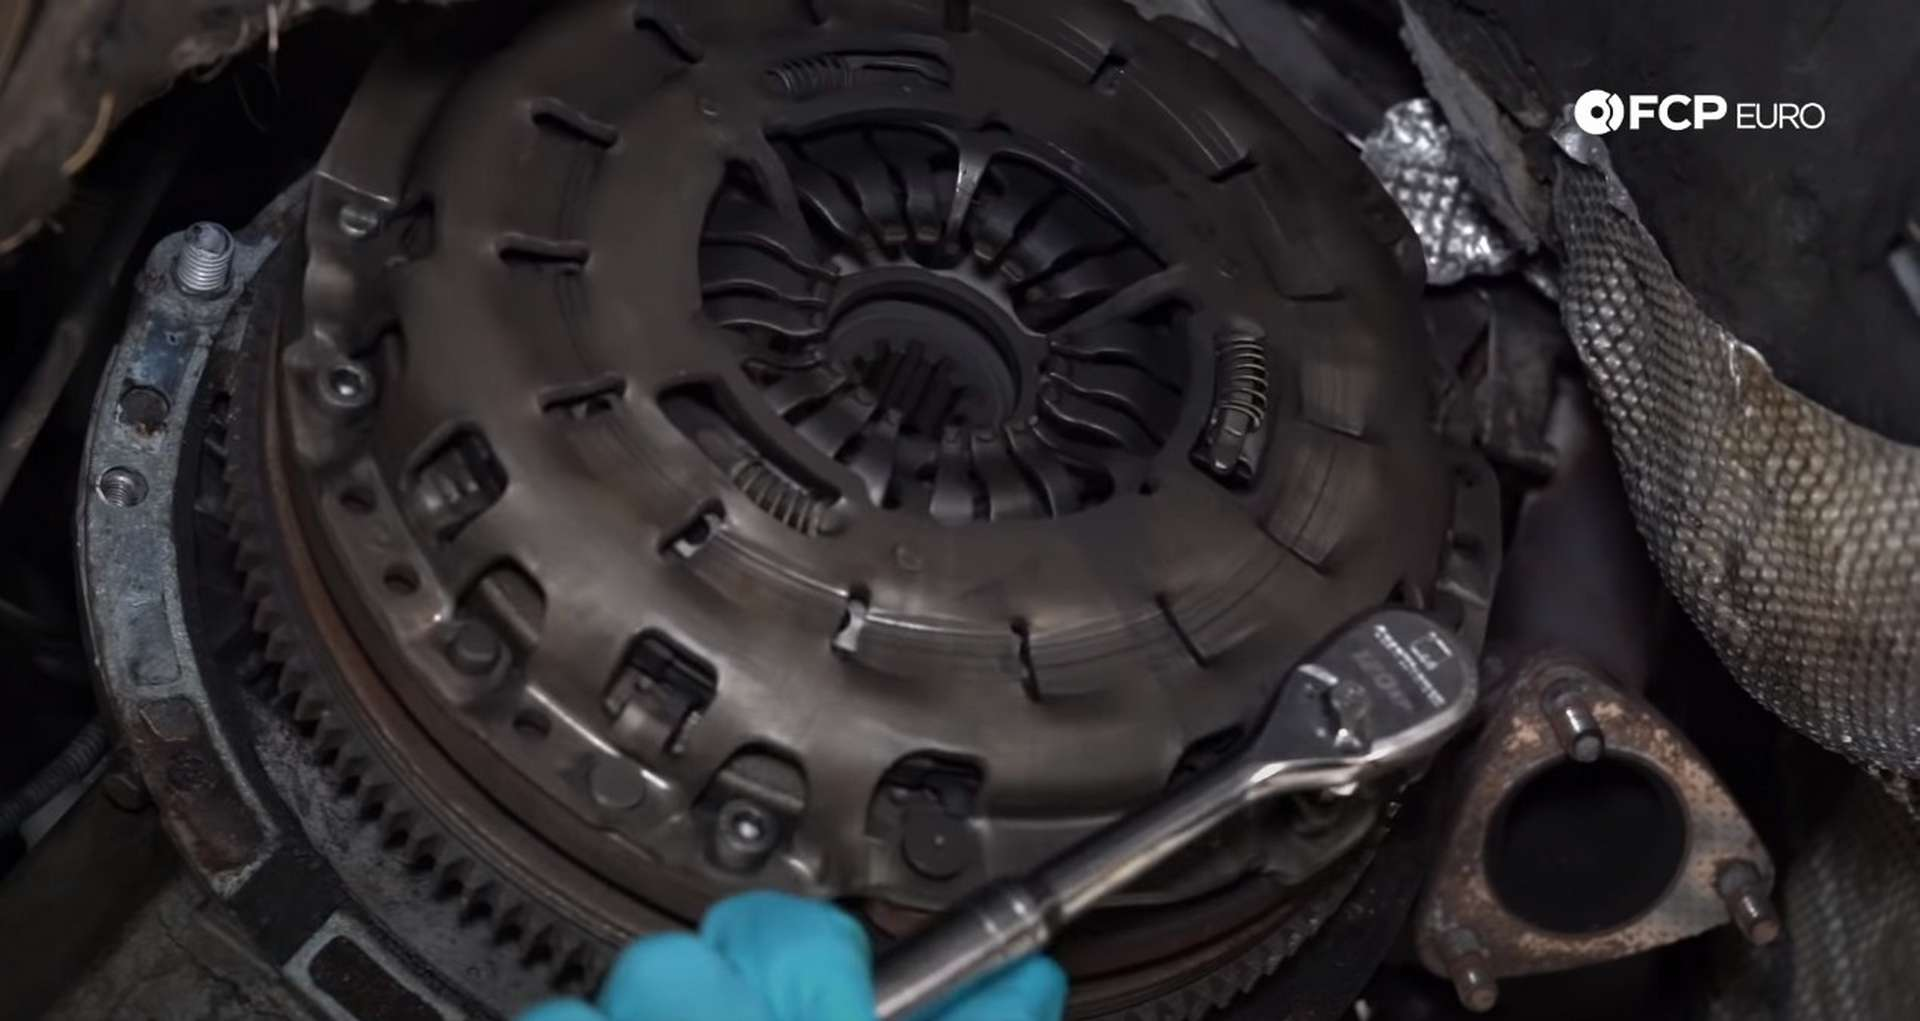 DIY BMW E46 Clutch Replacement removing the pressure plate bolts